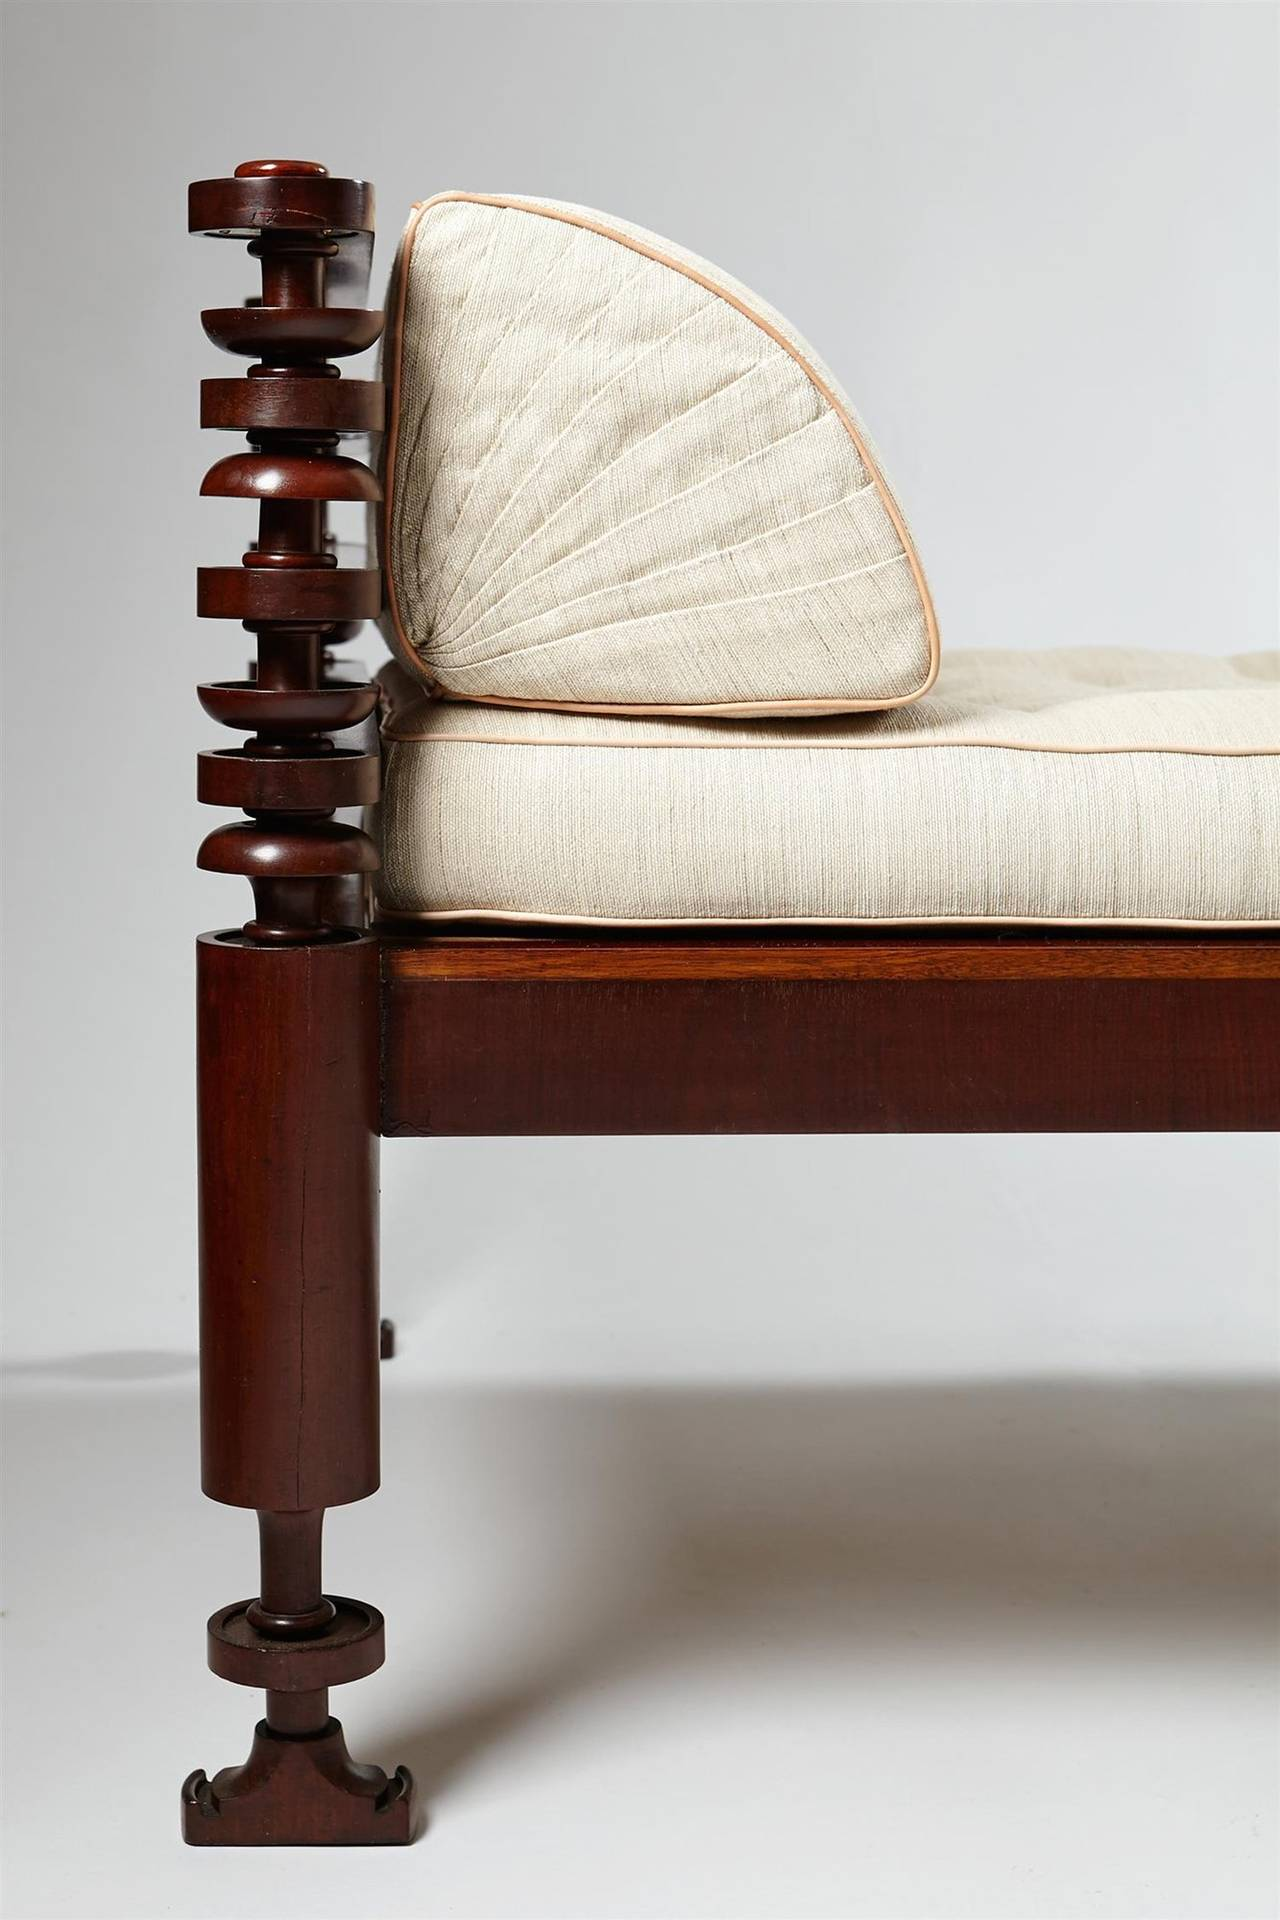 Daybed Designed by Kaare Klint for NM Rasmussen, Denmark, 1917 4